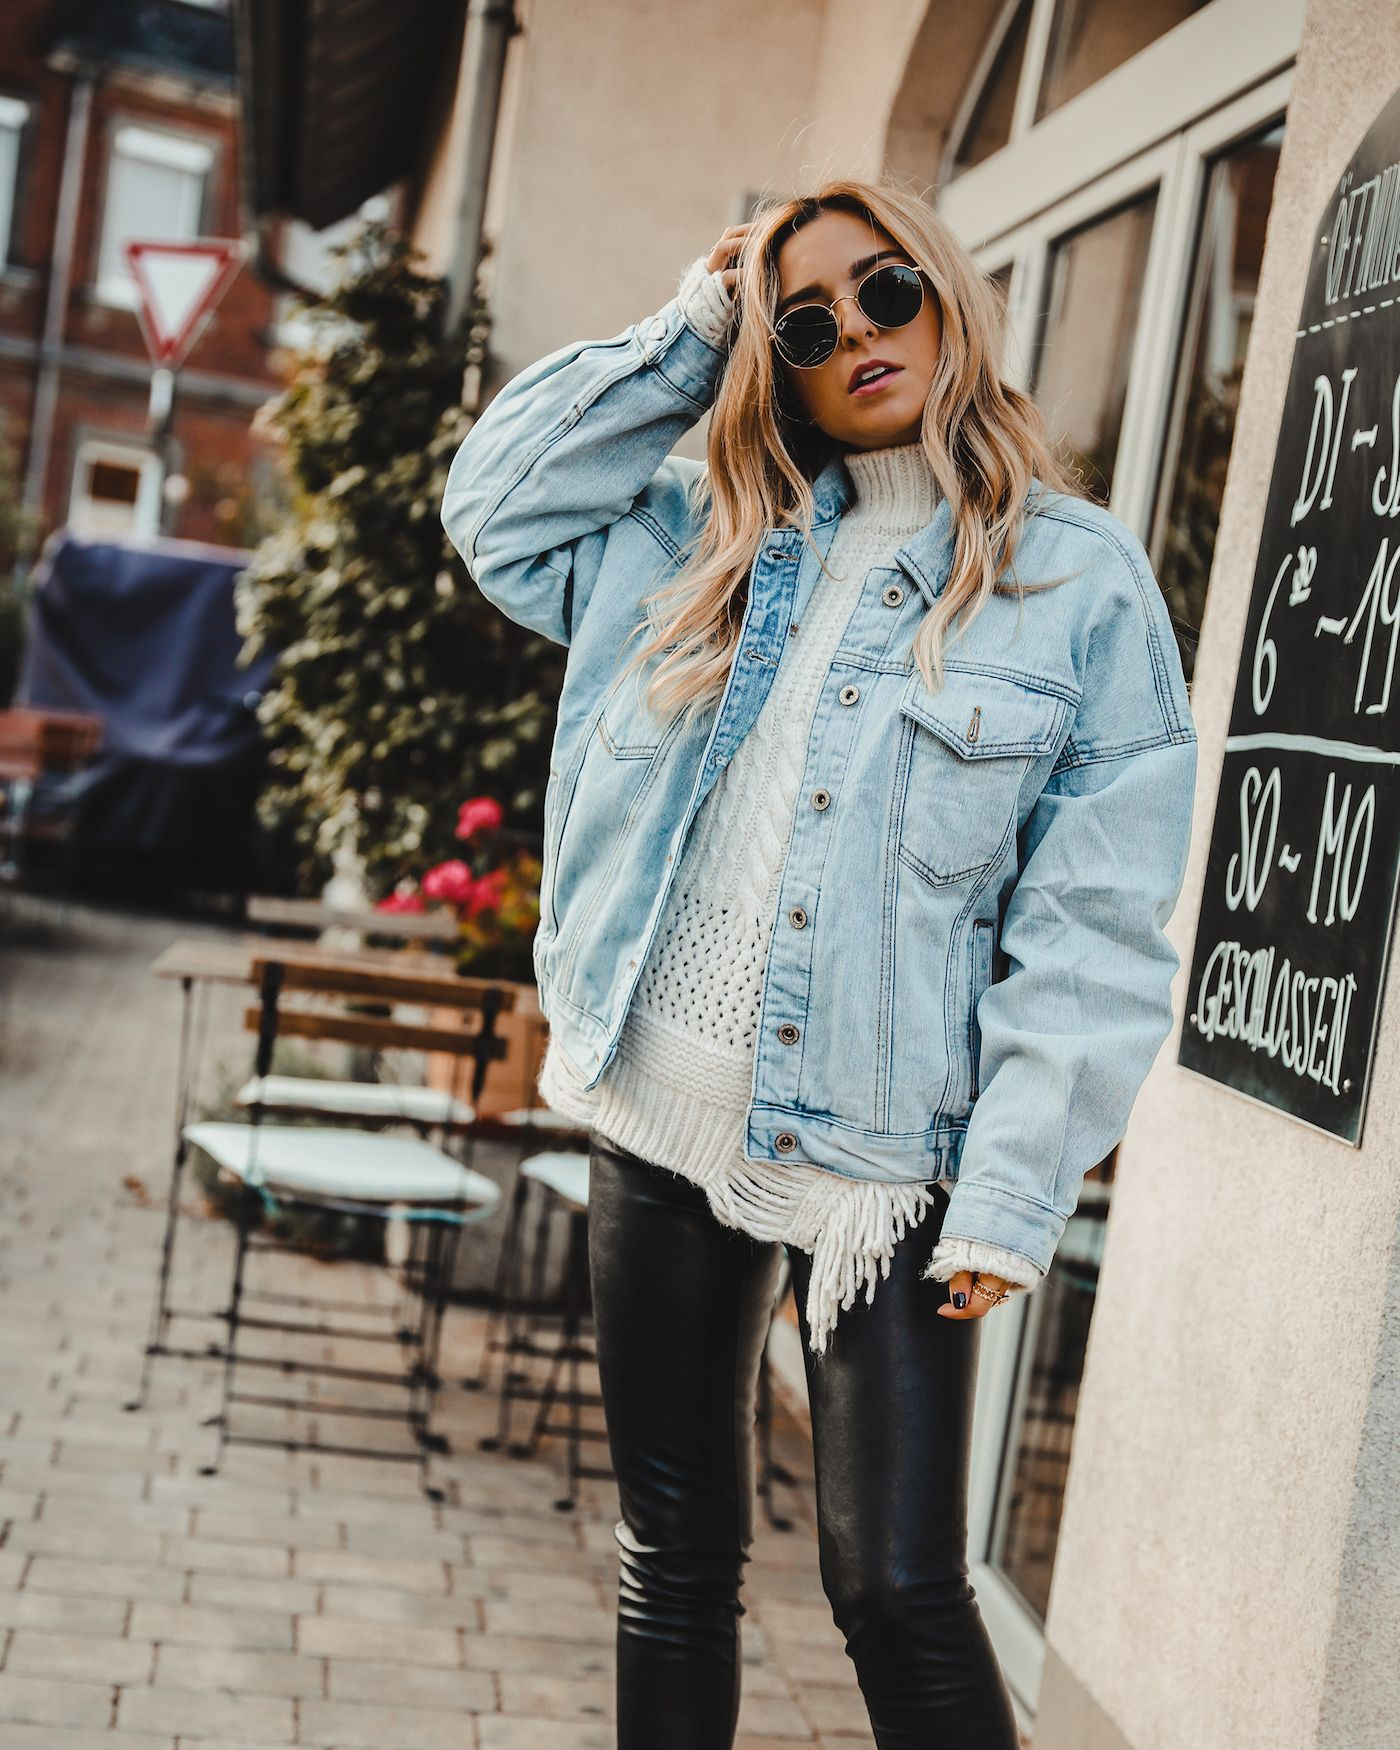 Working Part Time Hardly Working Want Get Repeat Fall Jackets Outfit Denim Jacket Outfit Winter Denim Jacket Outfit Fall [ 1750 x 1400 Pixel ]